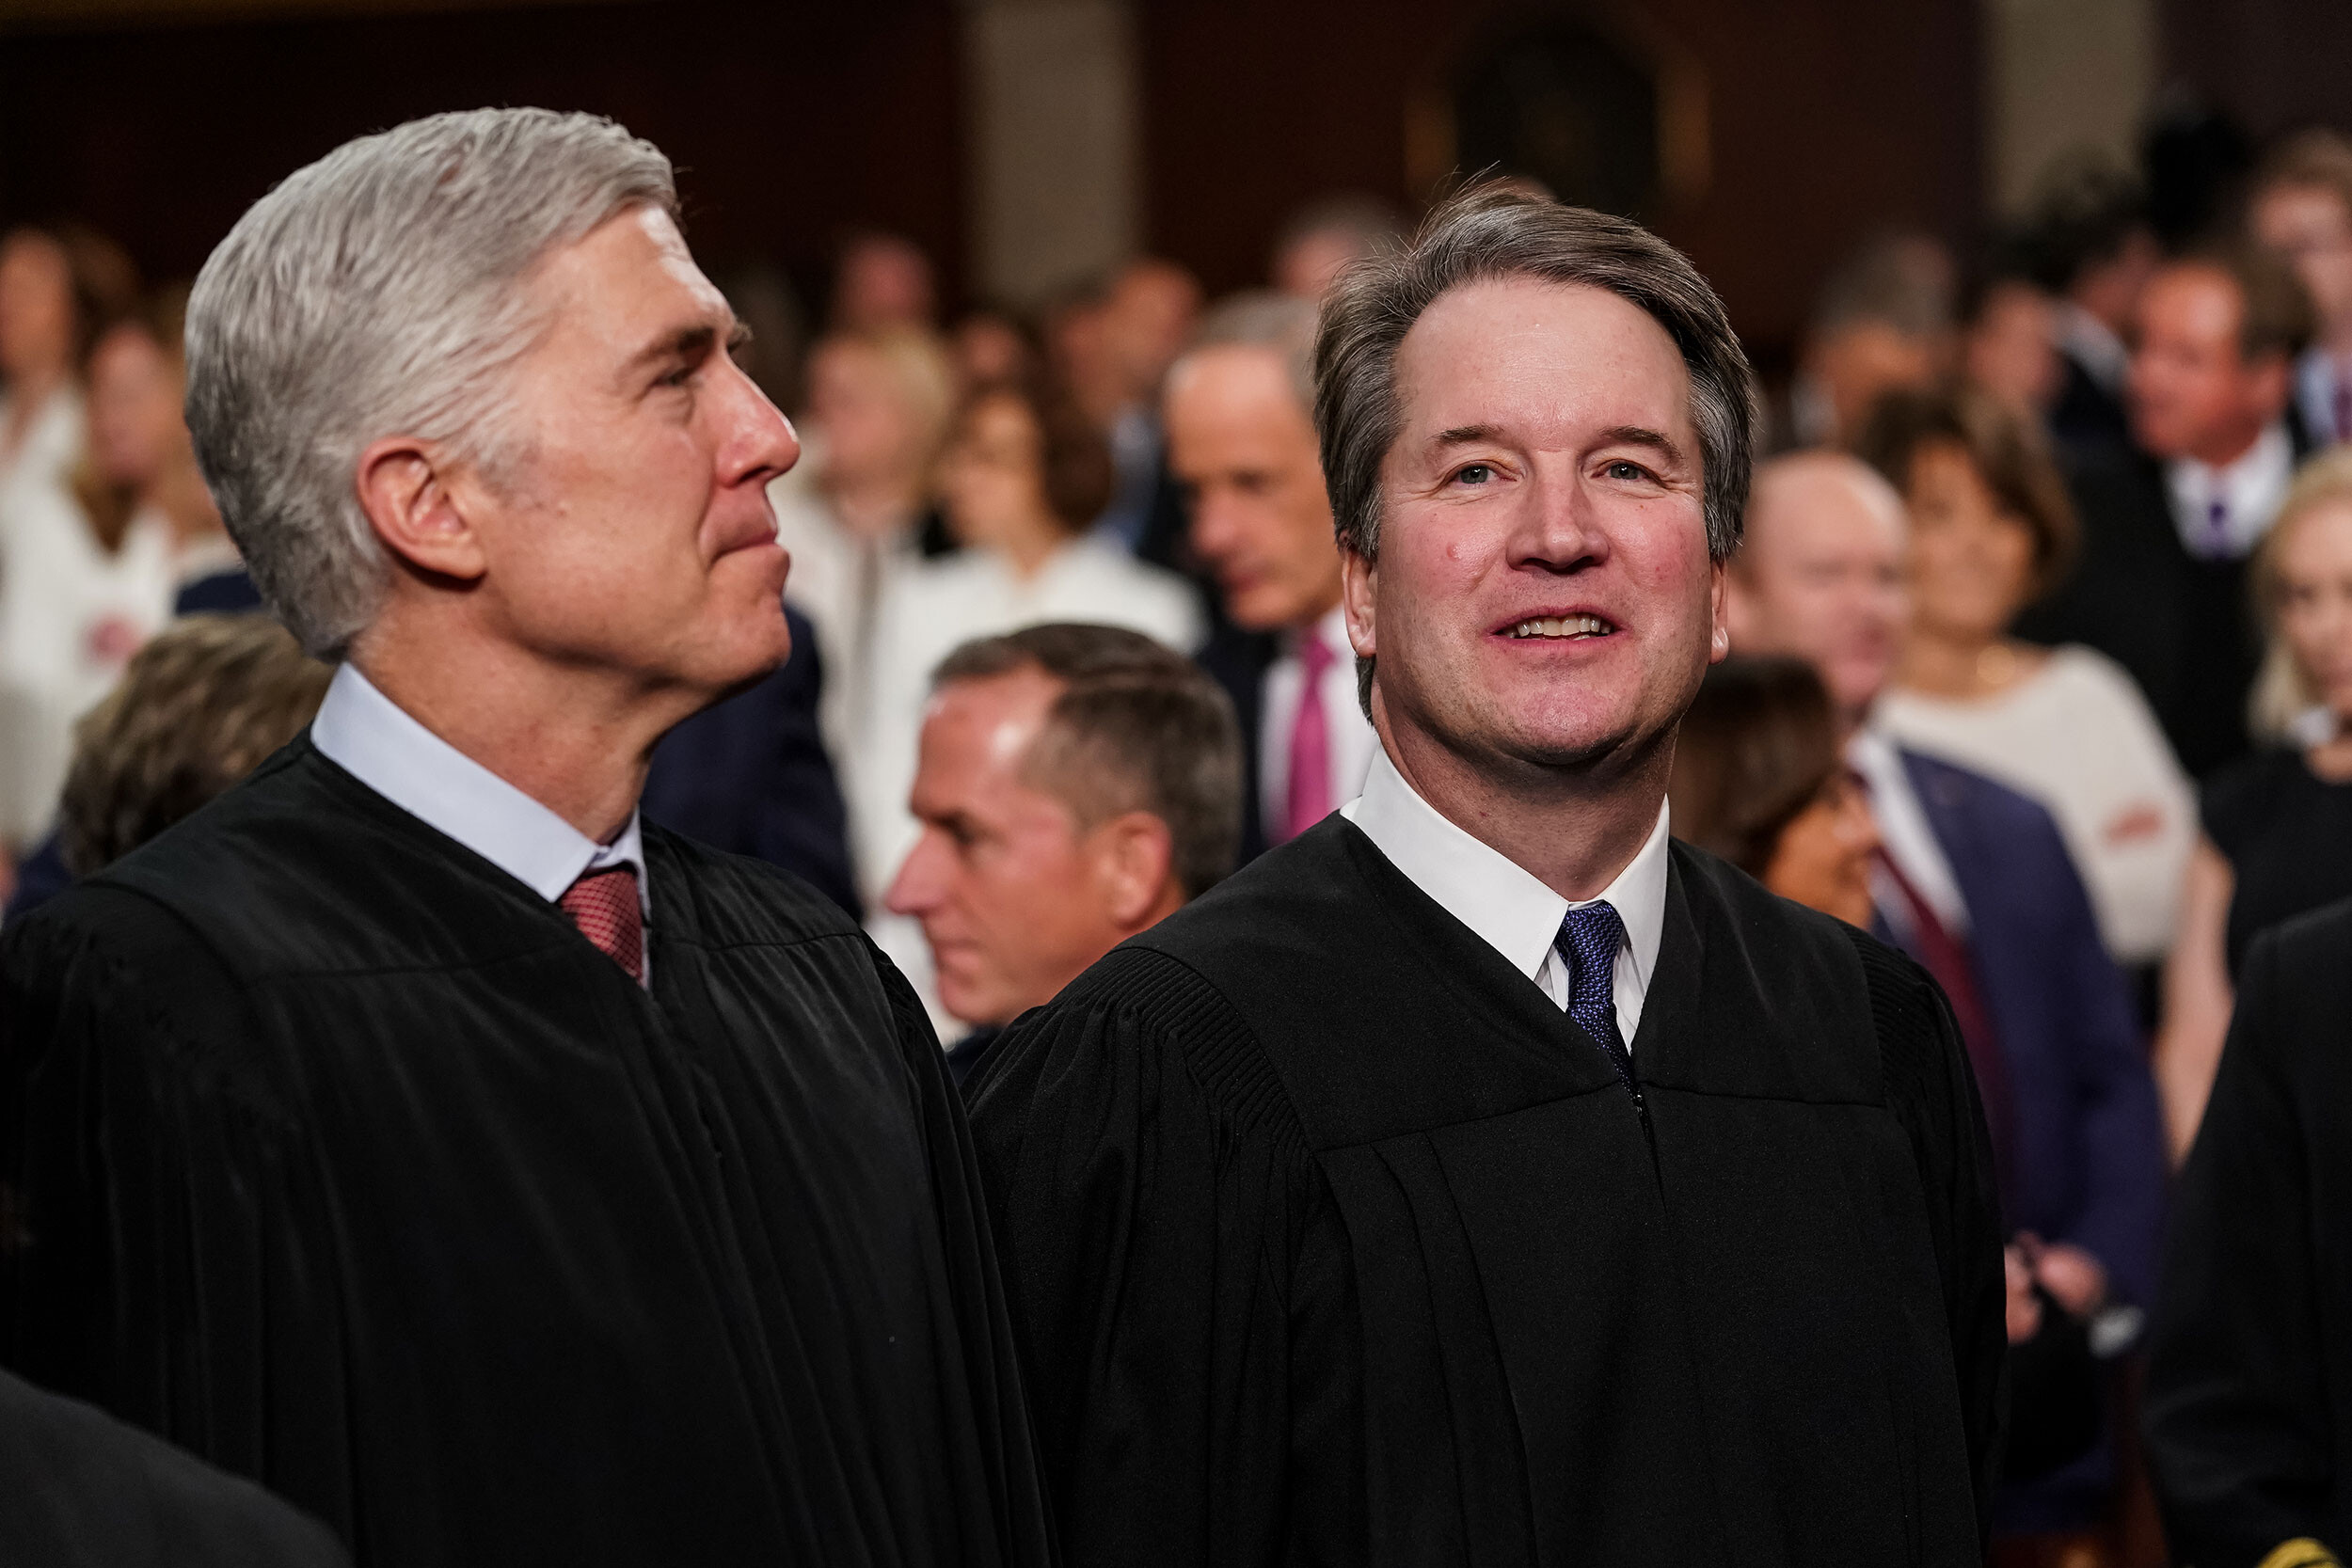 Justice Brett Kavanaugh tests positive for Covid-19